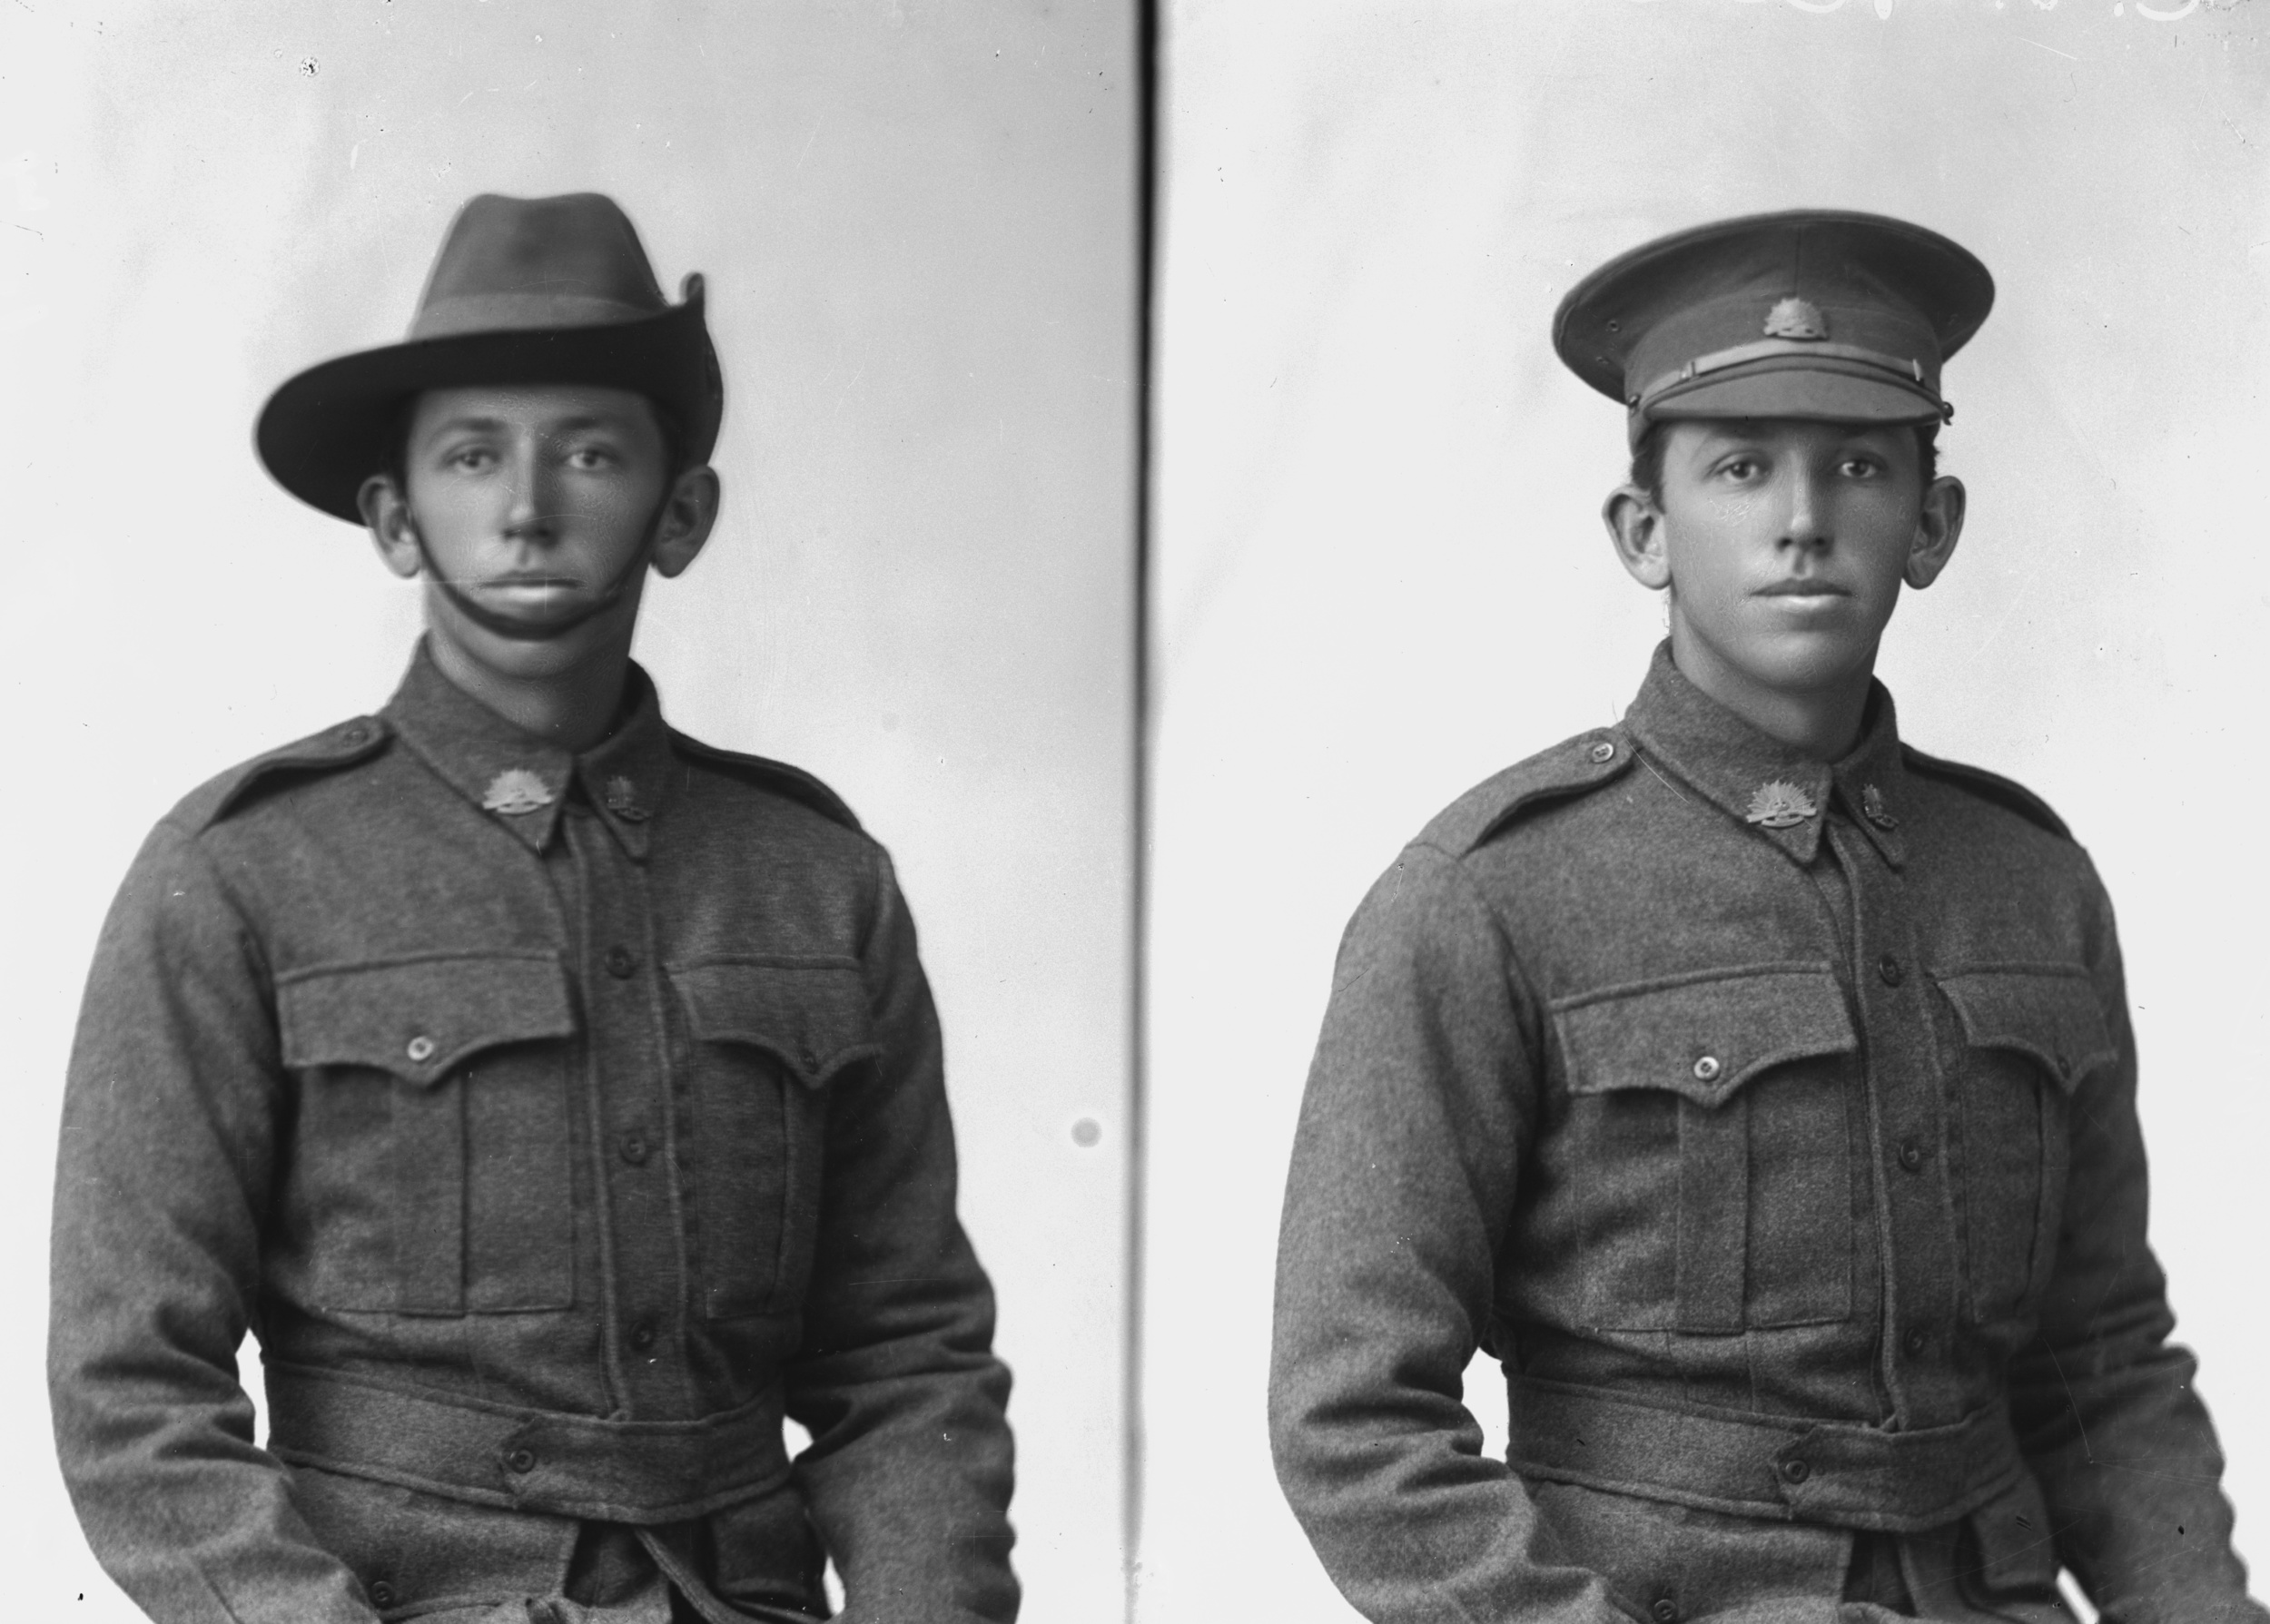 Photographed at the Dease Studio, 117 Barrack Street Perth WA Image courtesy of the State Library of Western Australia: 108693PD